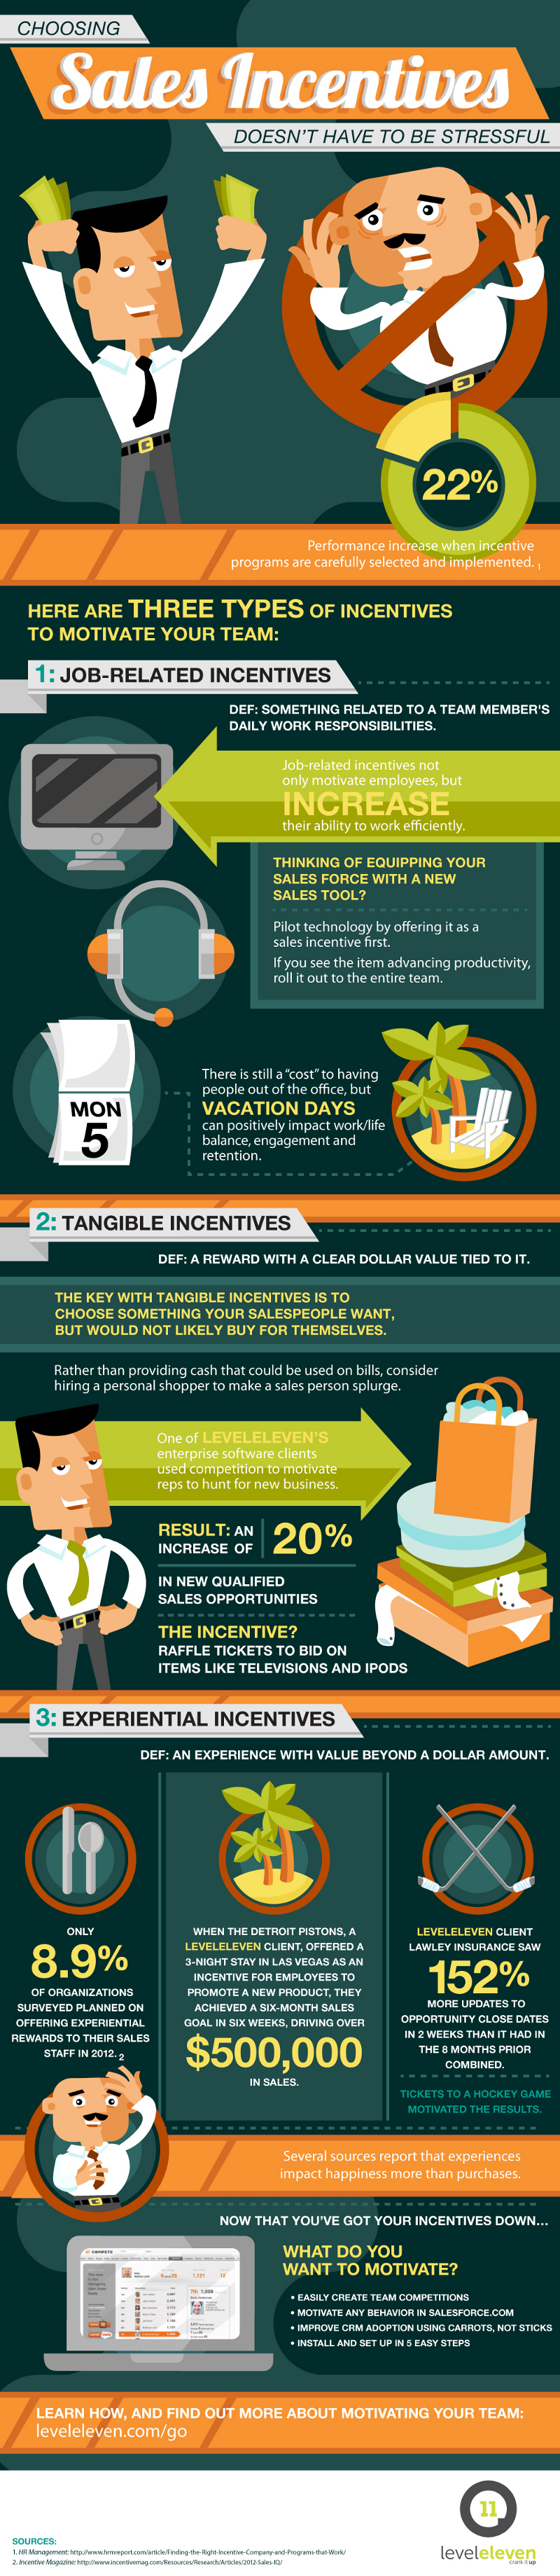 Types of Sales Incentives